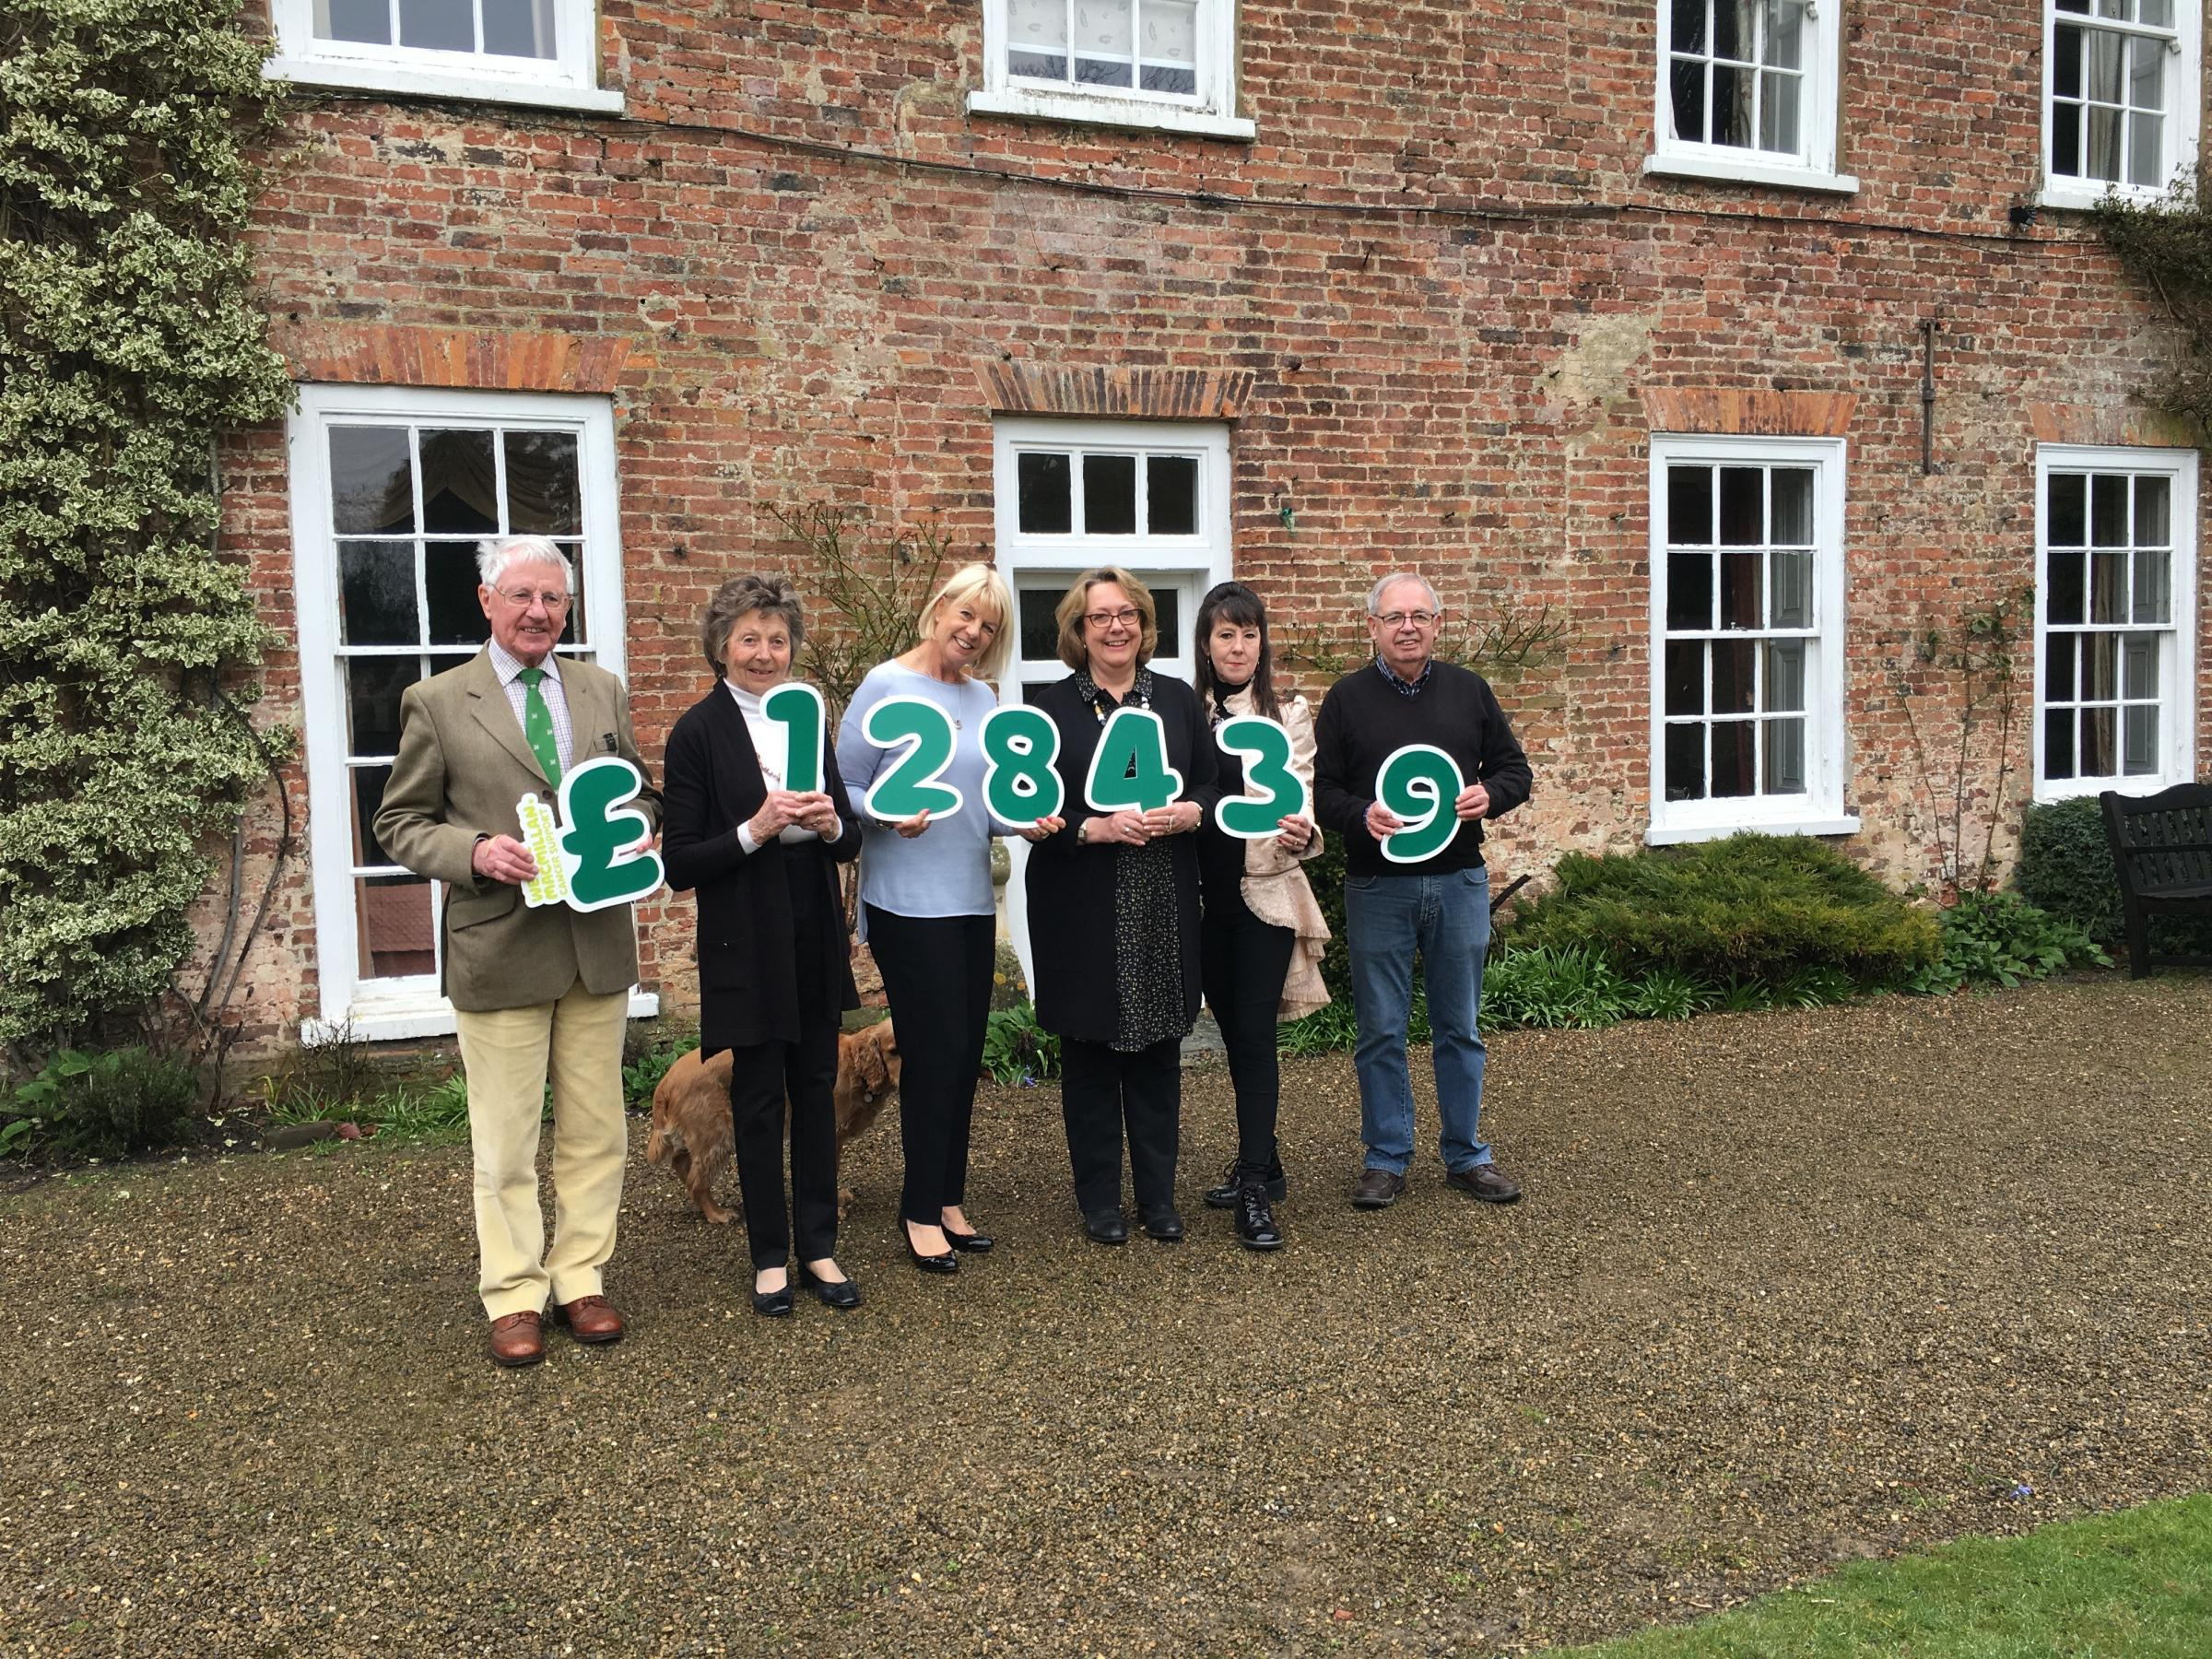 FUNDRAISERS: From left: Peter Danby-Smith, President - Lady Susan Watson, Jan Drinkall, Jane Parker, Chair - Katrina Lane and David Gant.